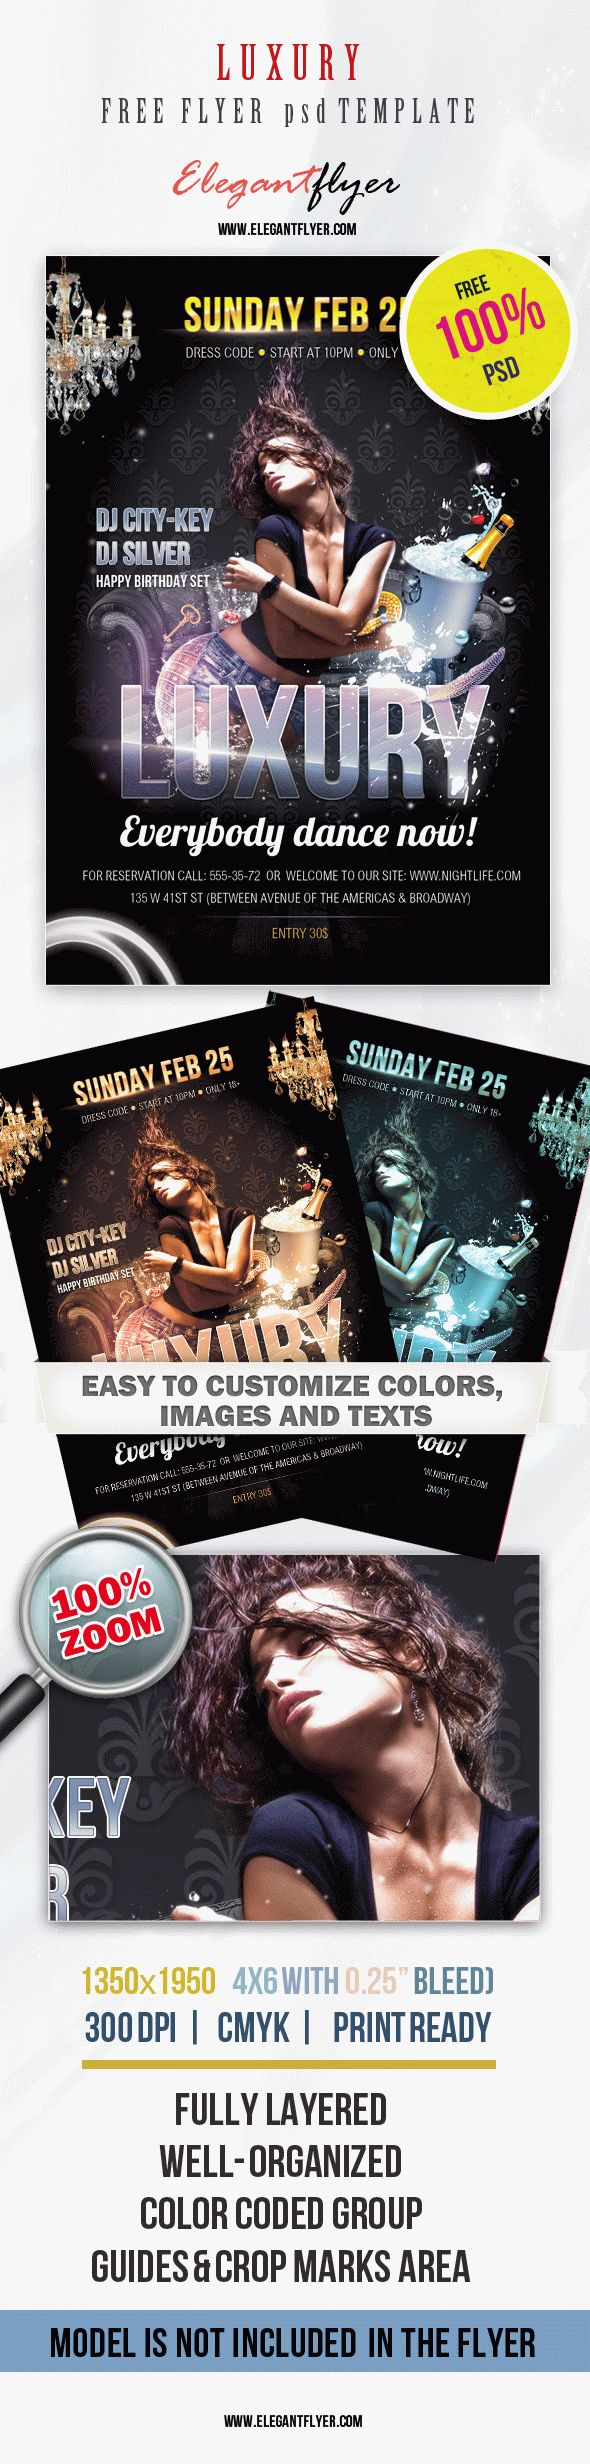 Free Flyer PSD Template – Luxury